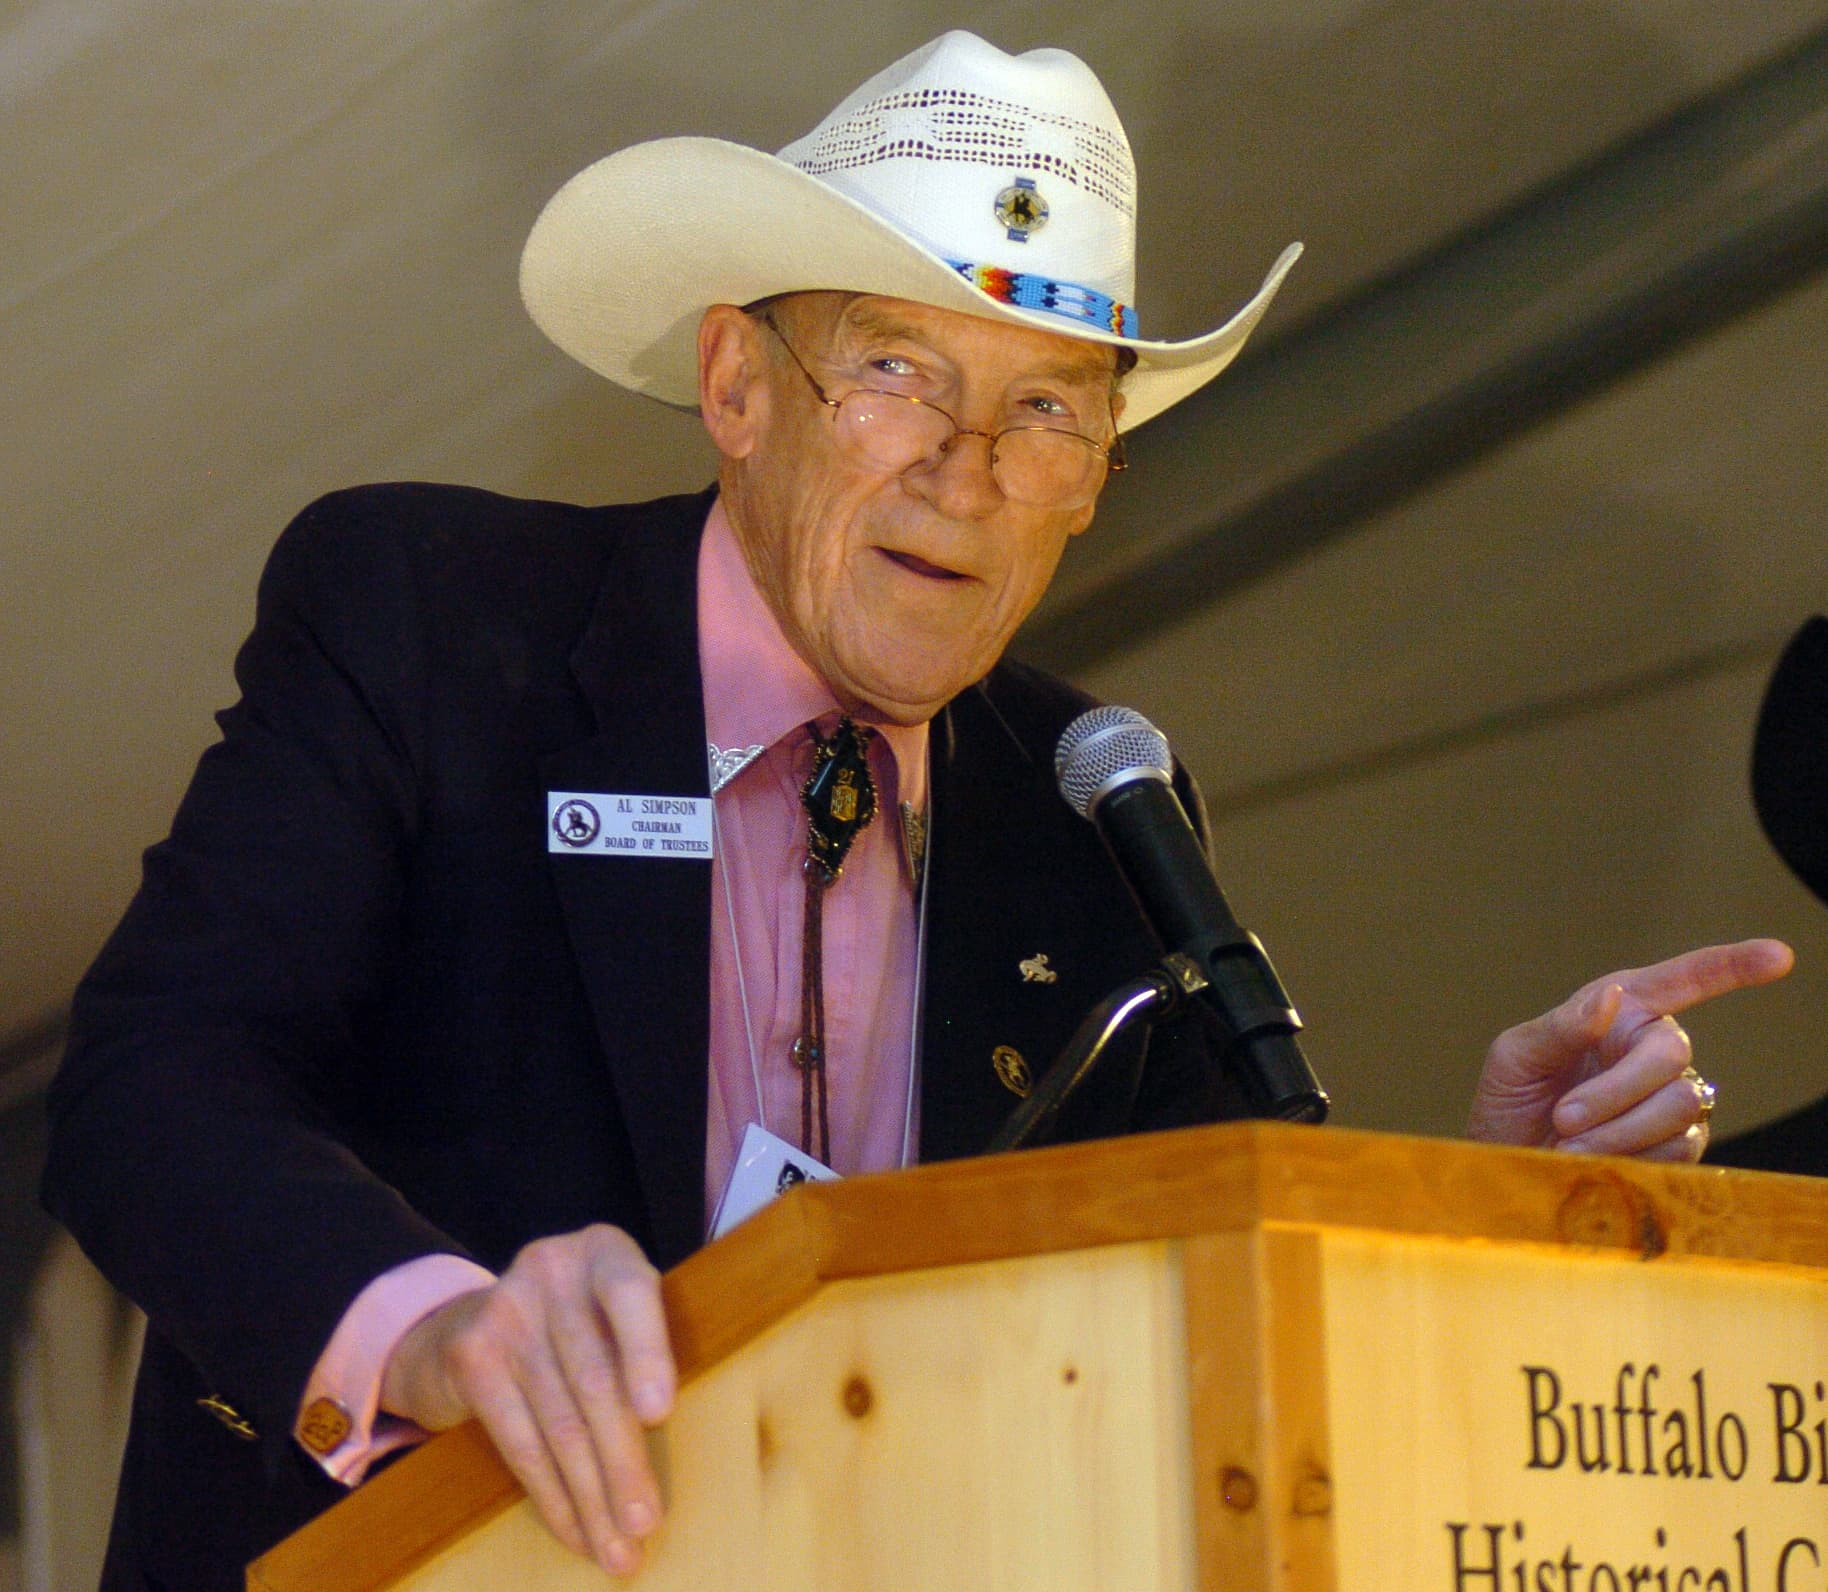 Al Simpson Feuds With Tea Party Over Wyoming Gop Wyofile